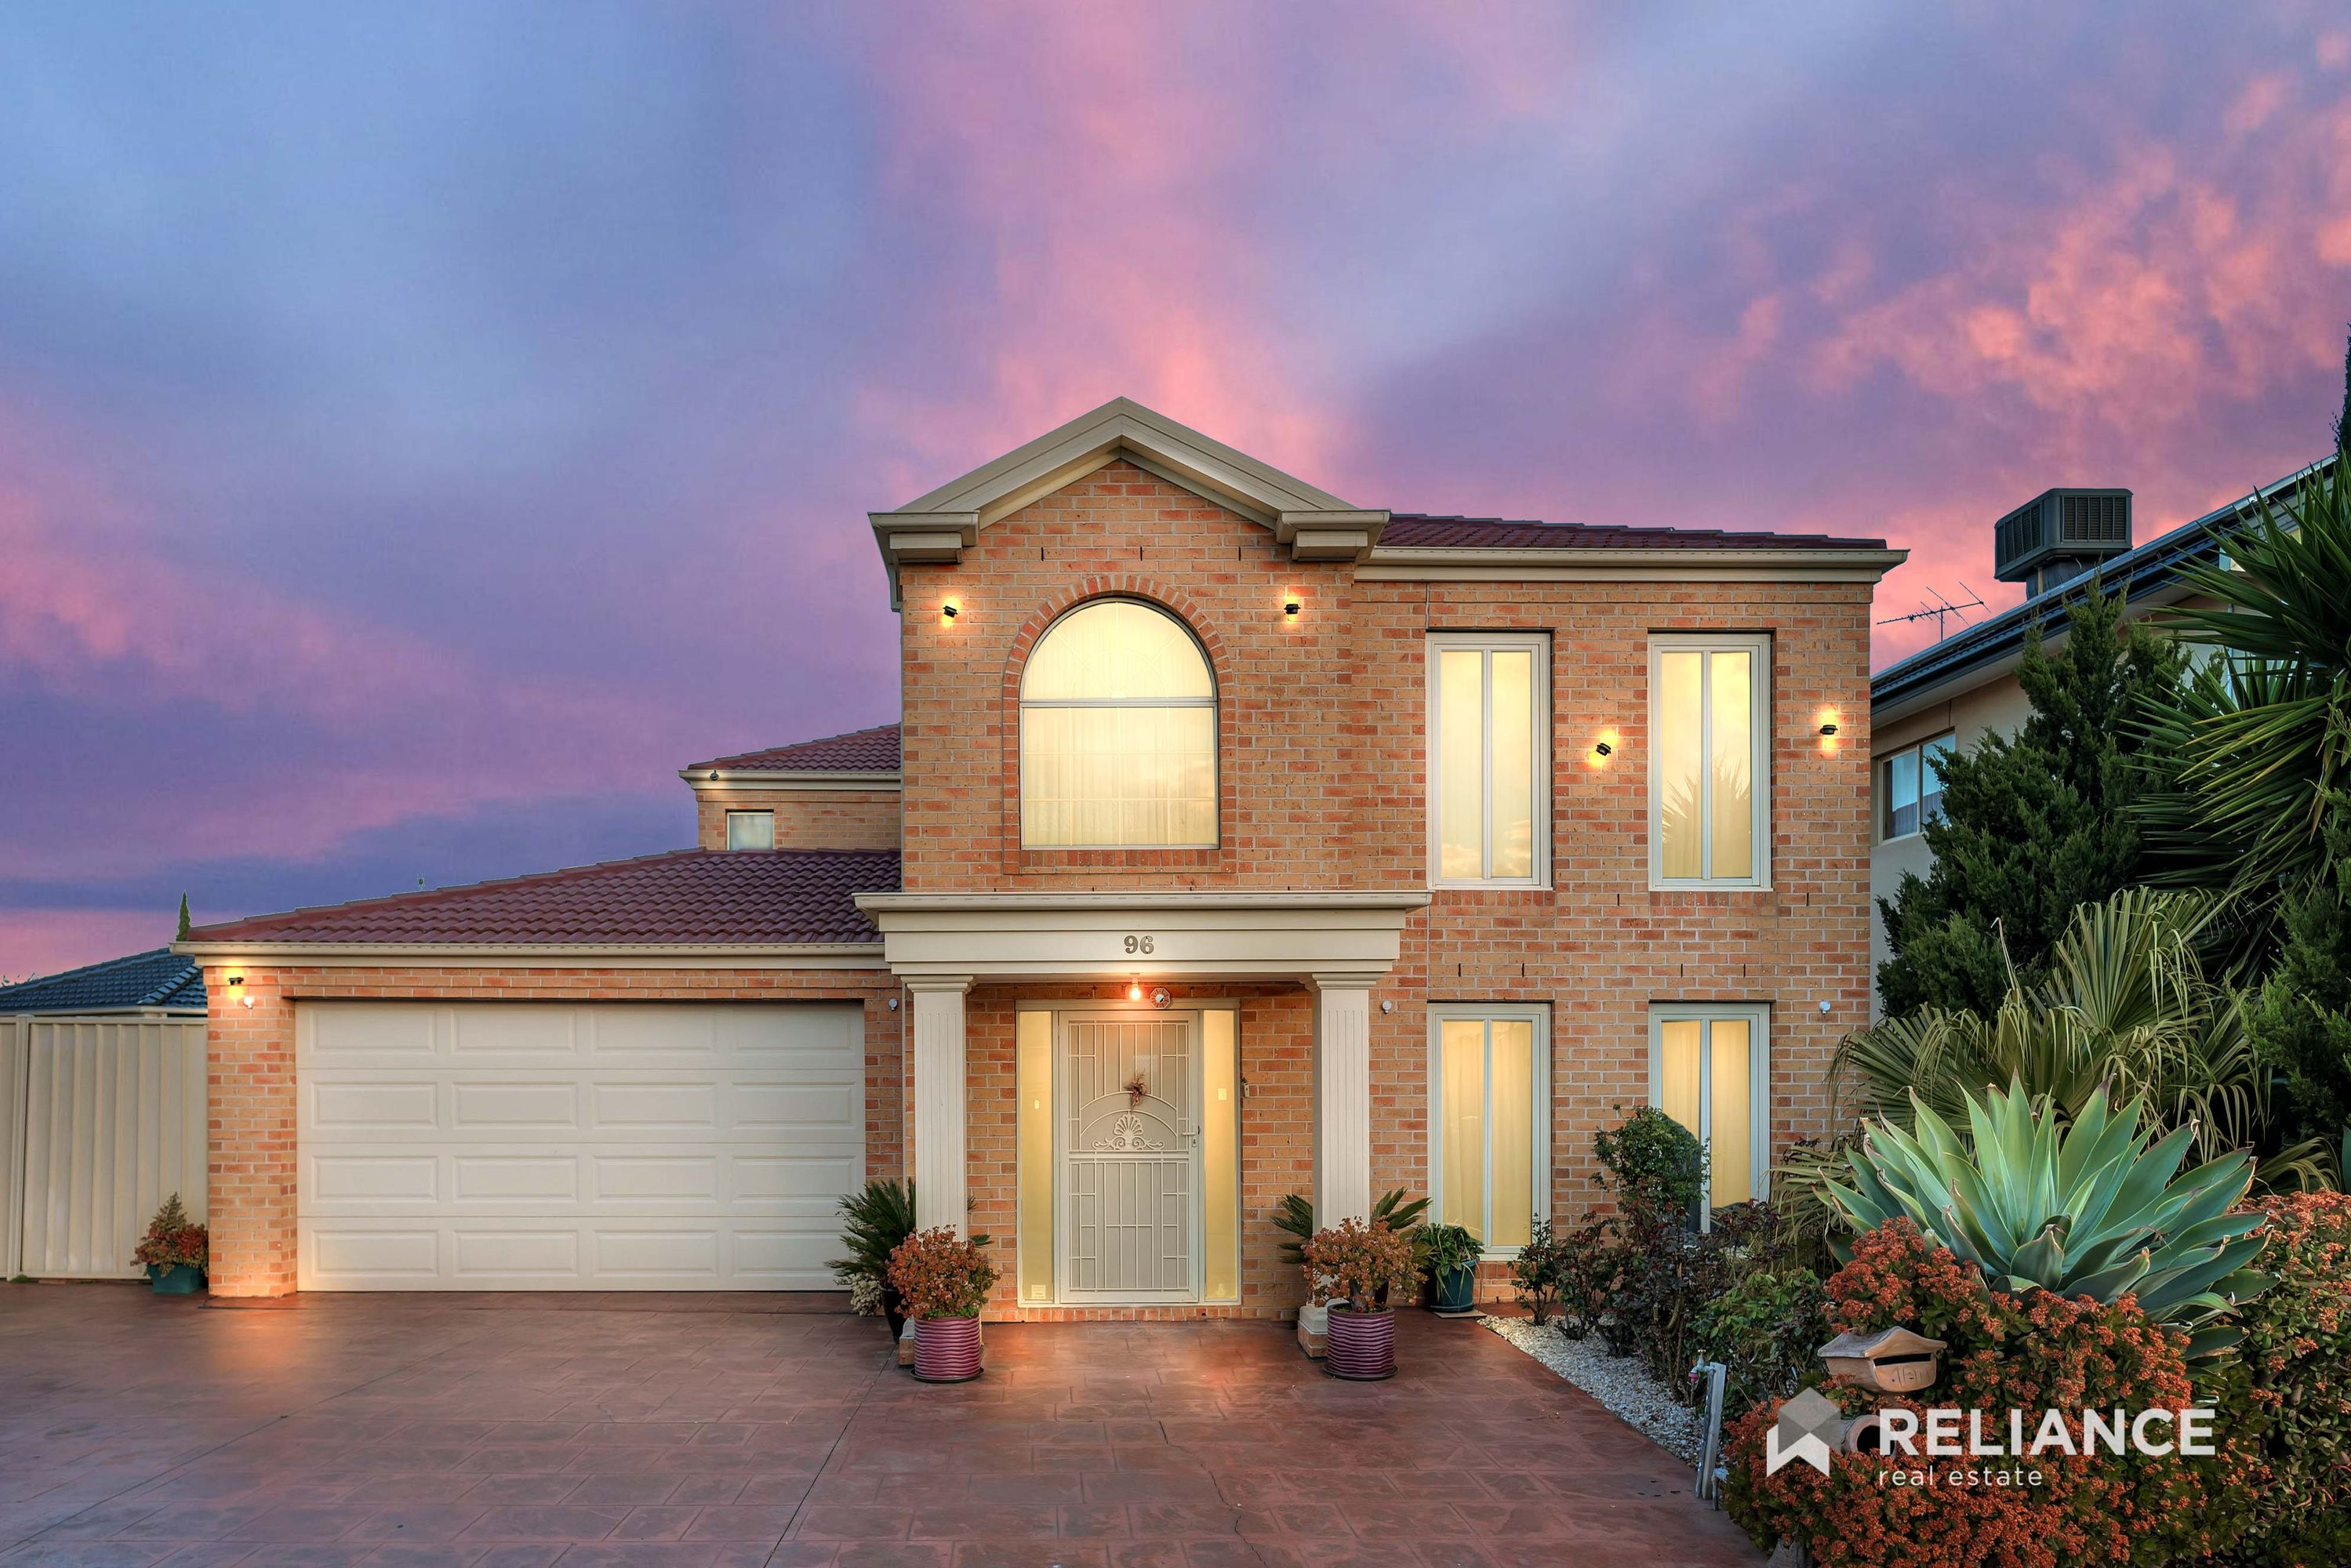 Prime Location! ; 96 Latham Street, Werribee